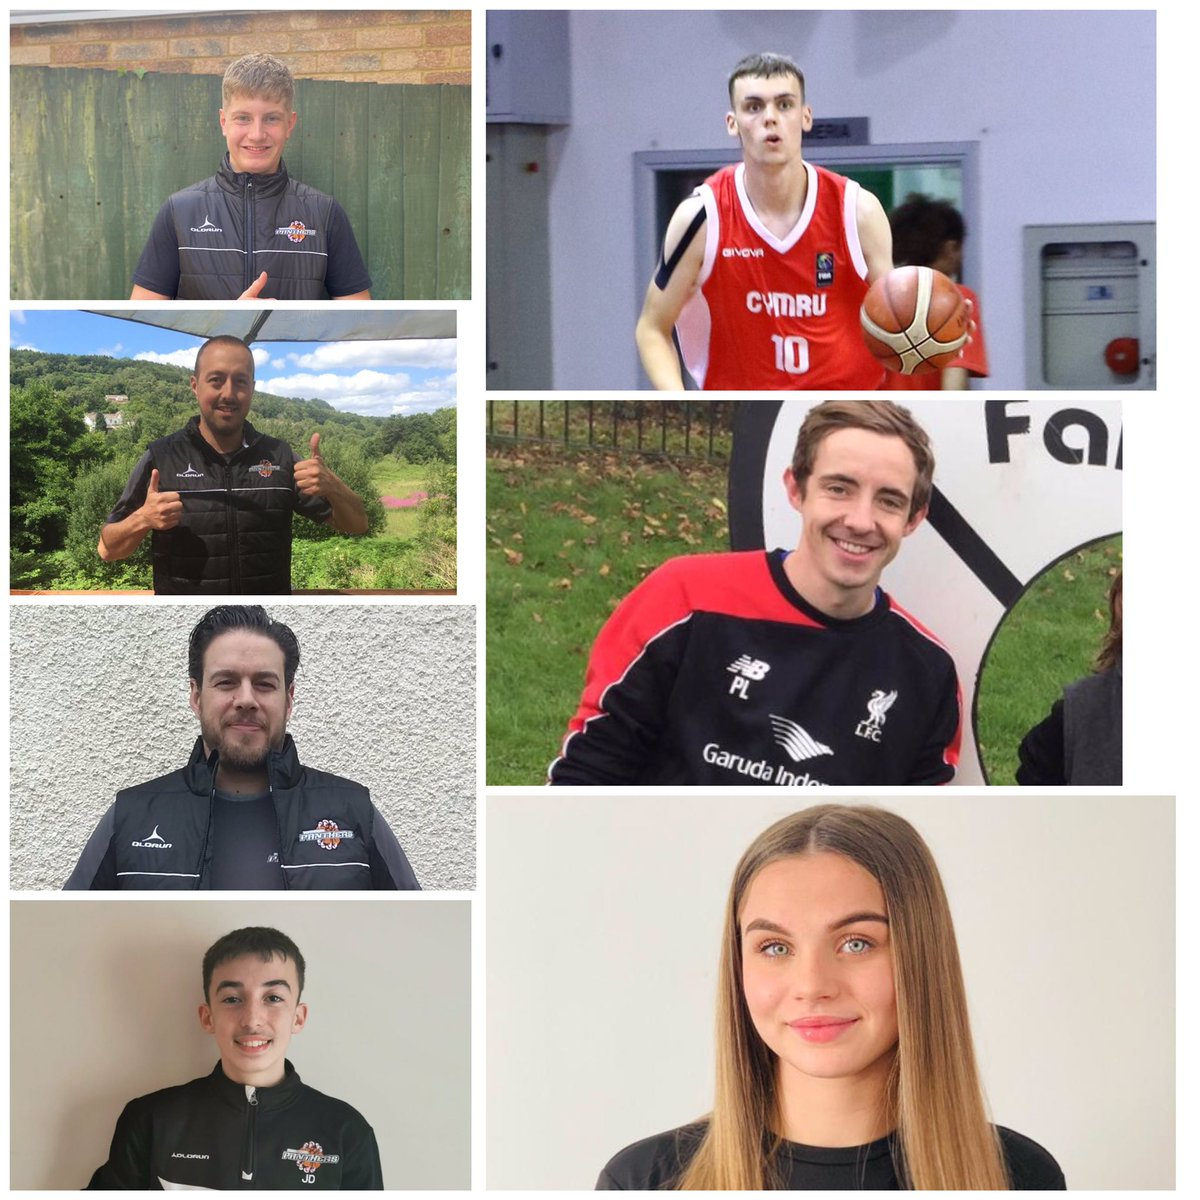 We would like to thank our great club coaches for everything they do to help grow and develop the club, teams and individual members @_UKCoaching @BasketballWales @SportRCT #ukcoachingweek2020 #inspiring #coaches #ponty #cubs #proudtobeapanther 🐾🏀🖤 https://t.co/0nbeEowI52